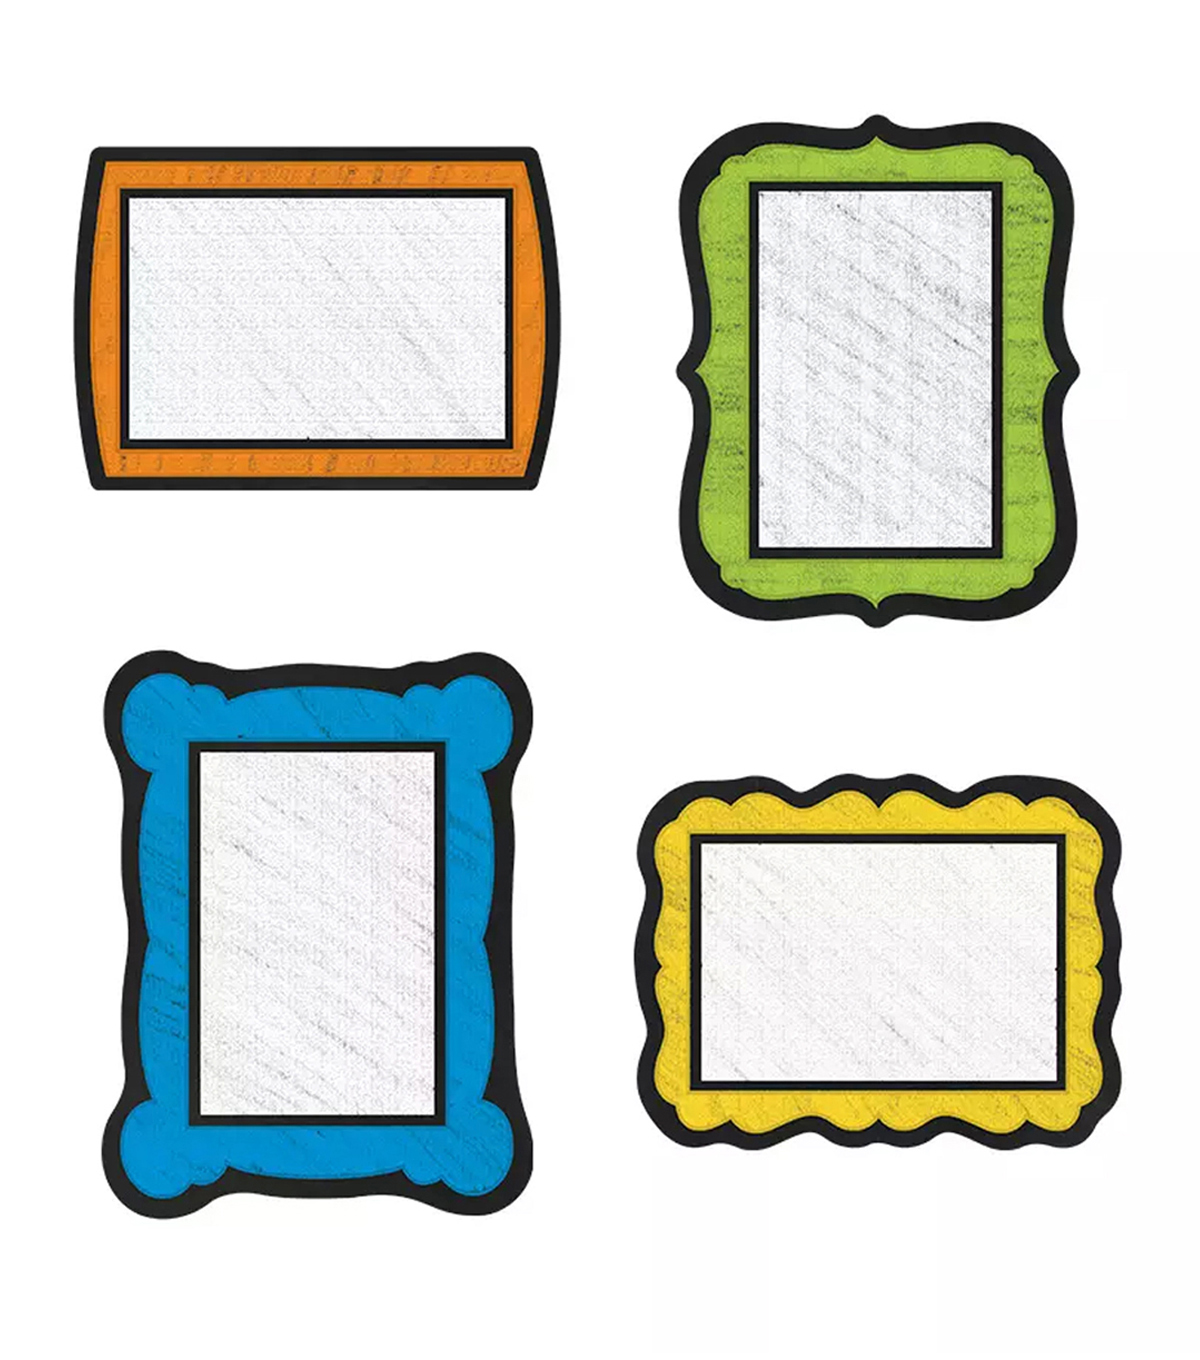 Colorful Chalkboard Colrful Cut Outs 36/pk, Set Of 6 Packs